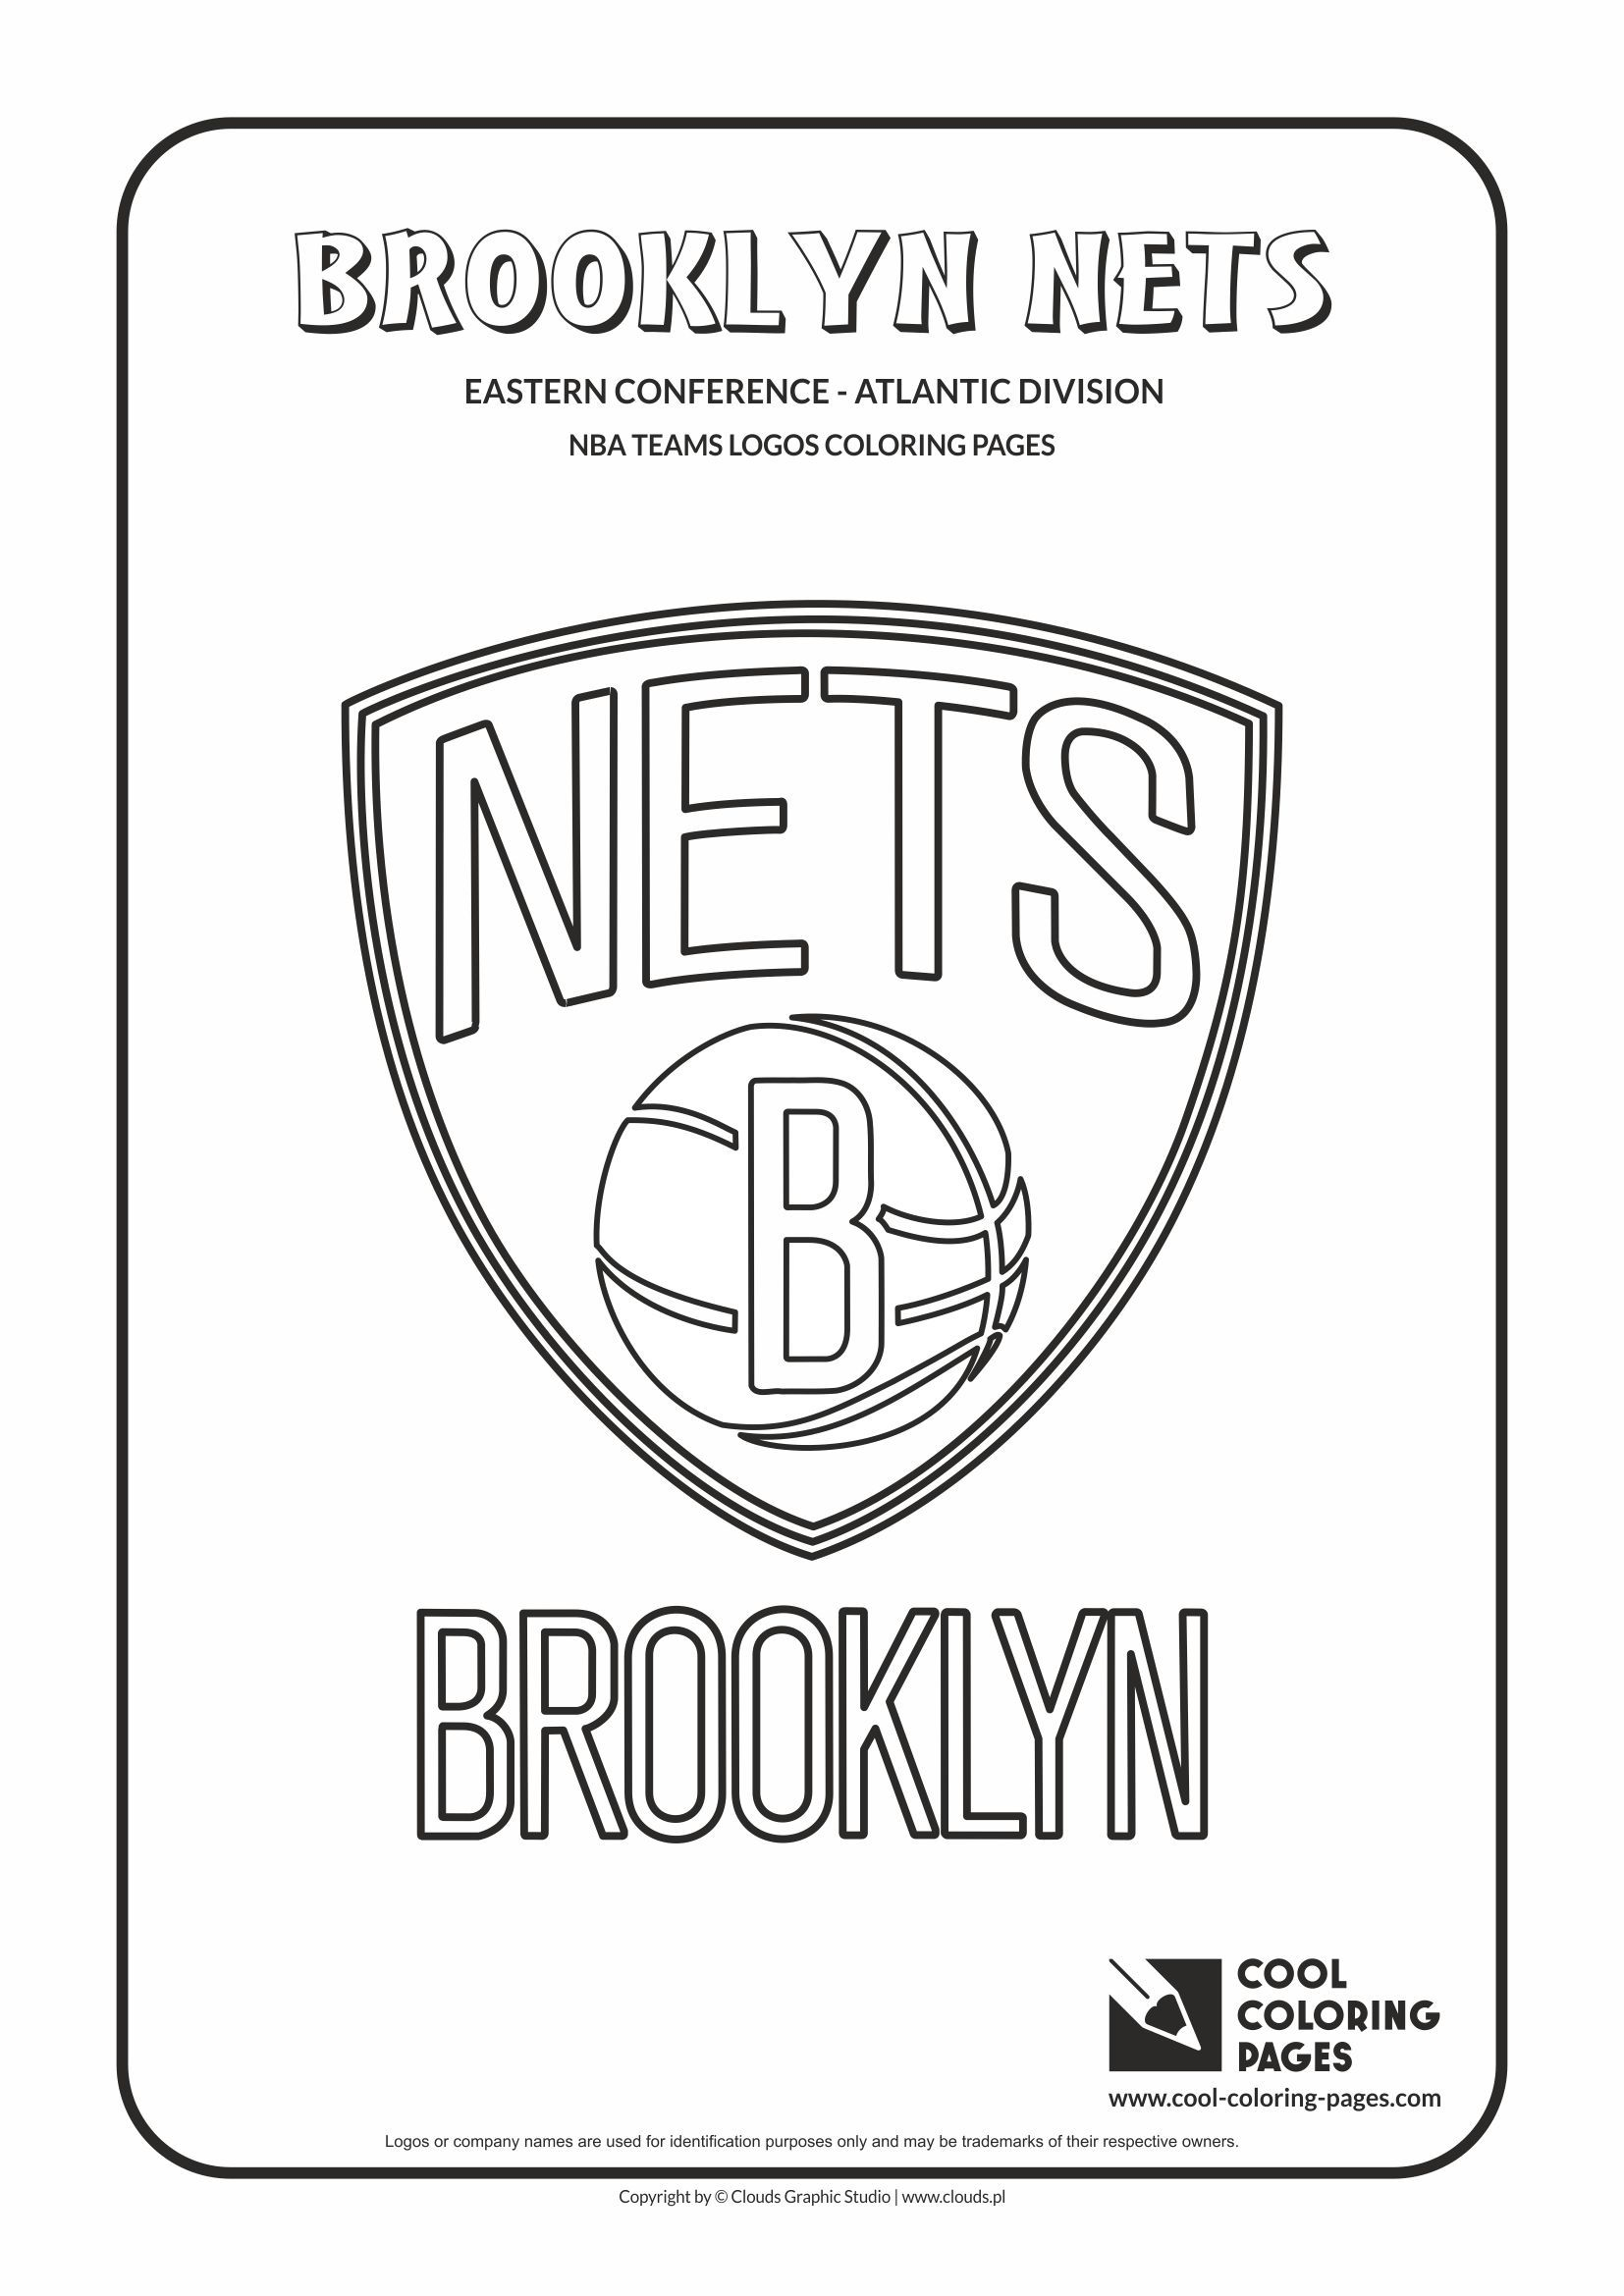 Cool coloring pages nba teams logos brooklyn nets logo for Indiana pacers coloring pages